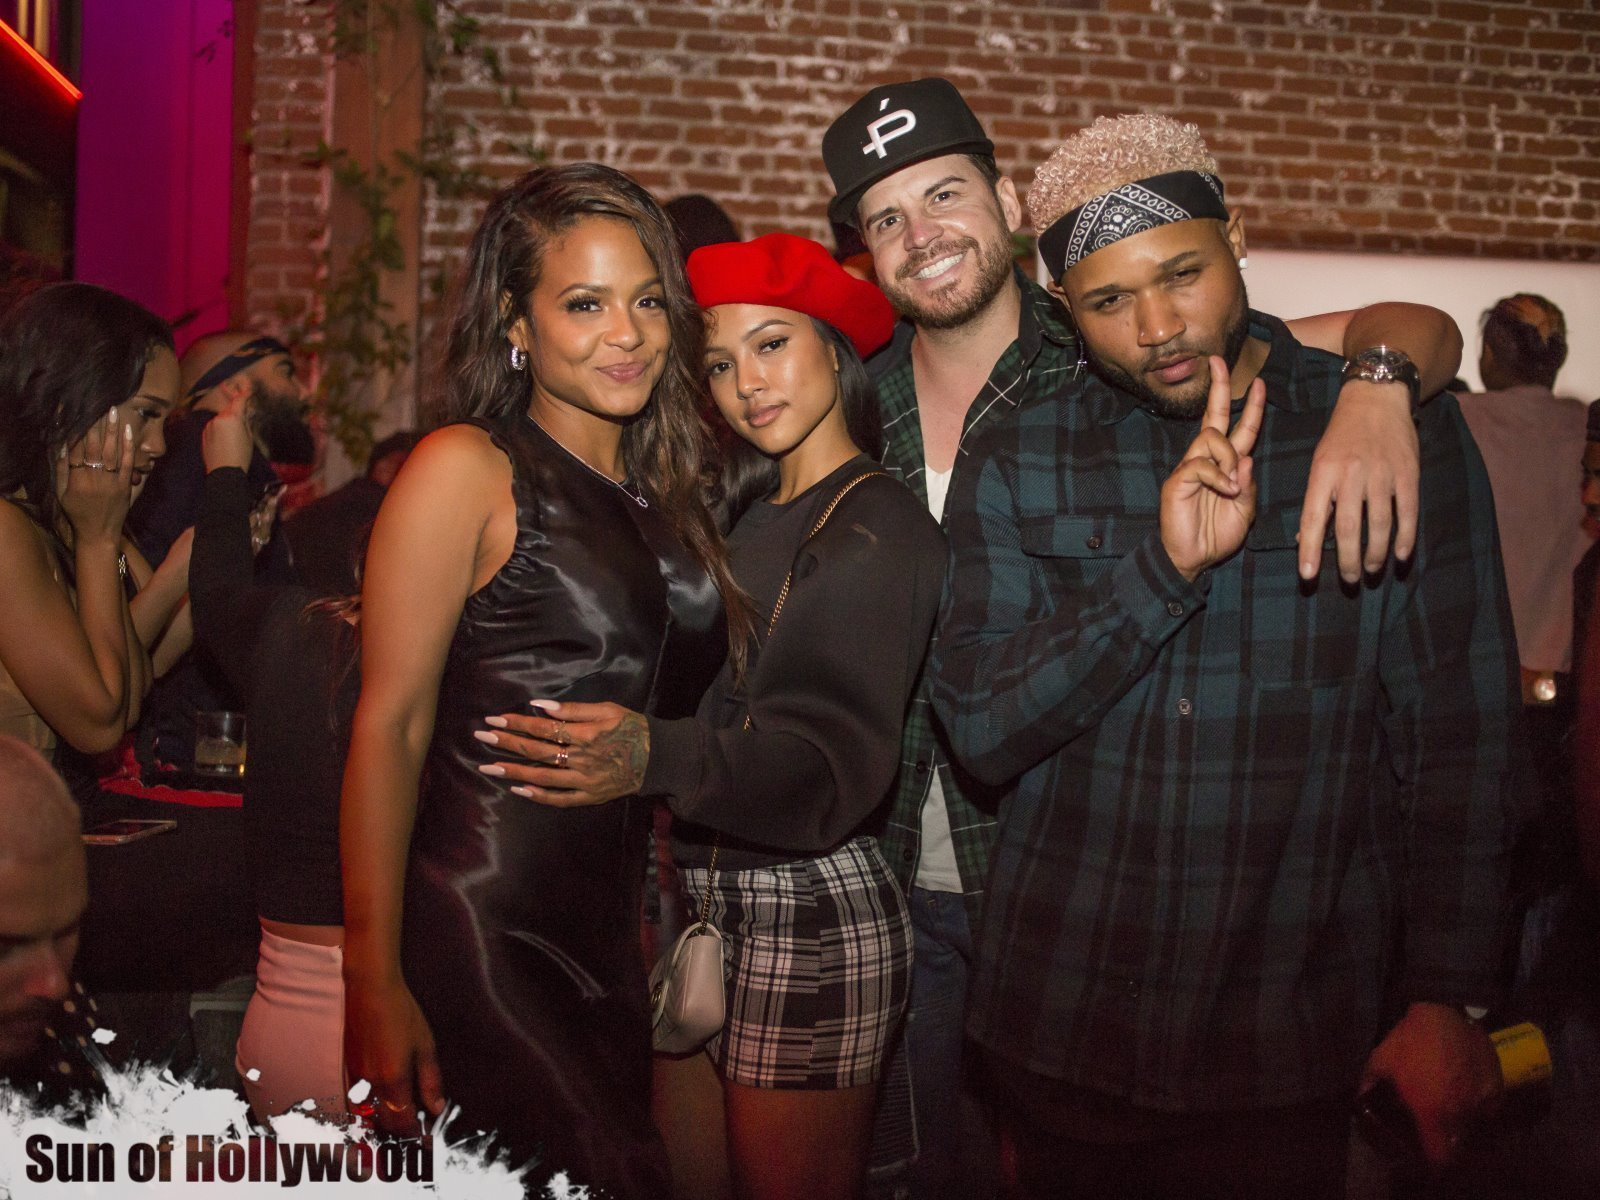 The Git It Krackin Krew : Christina Milian, Karrueche Tran, Dave O & J Ryan